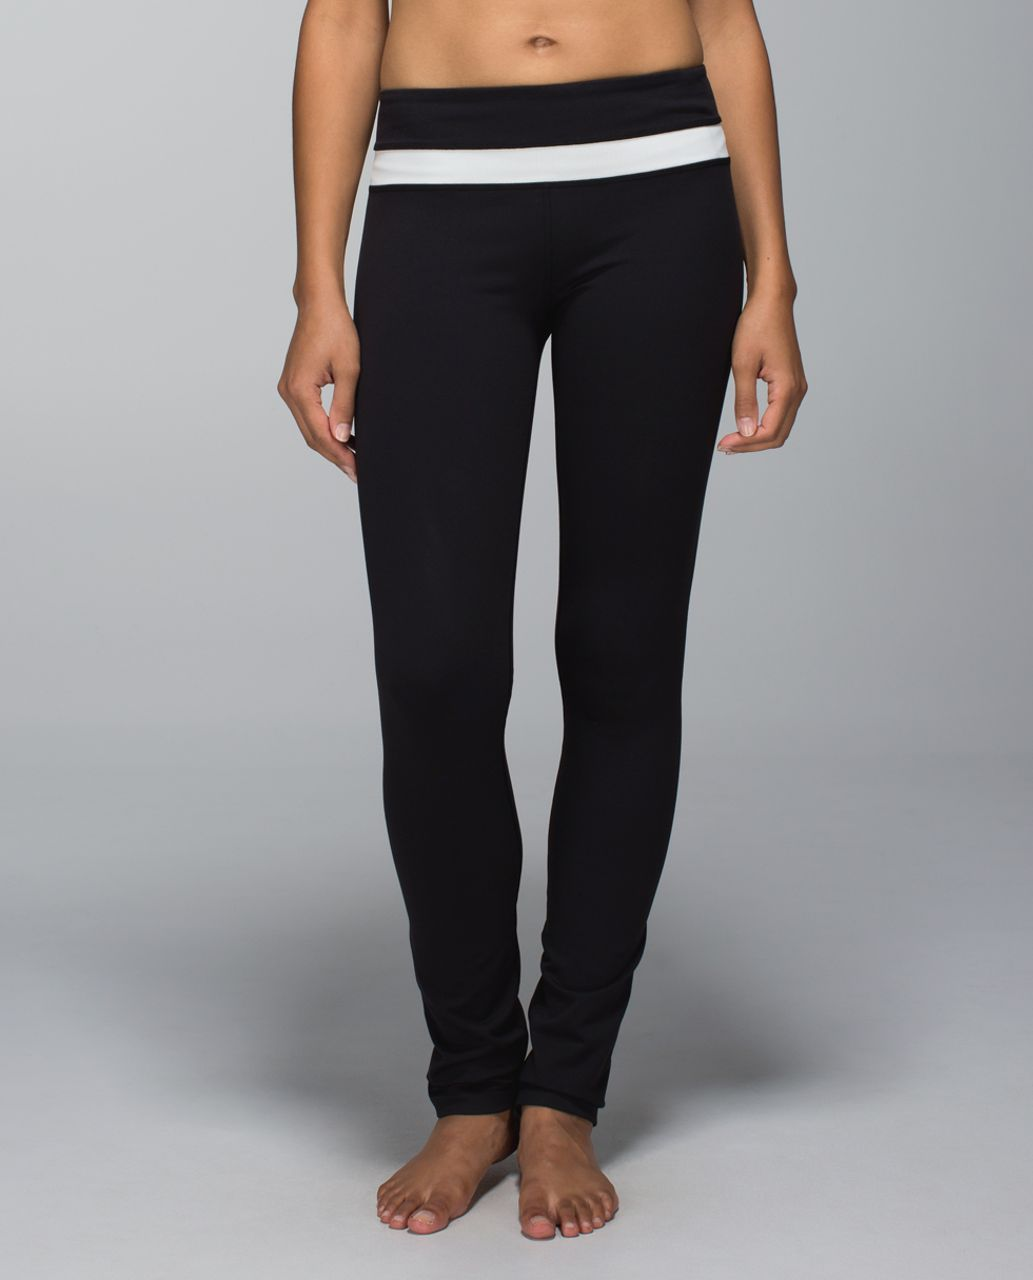 Lululemon Skinny Groove Pant *Full-On Luon - Black / Ghost